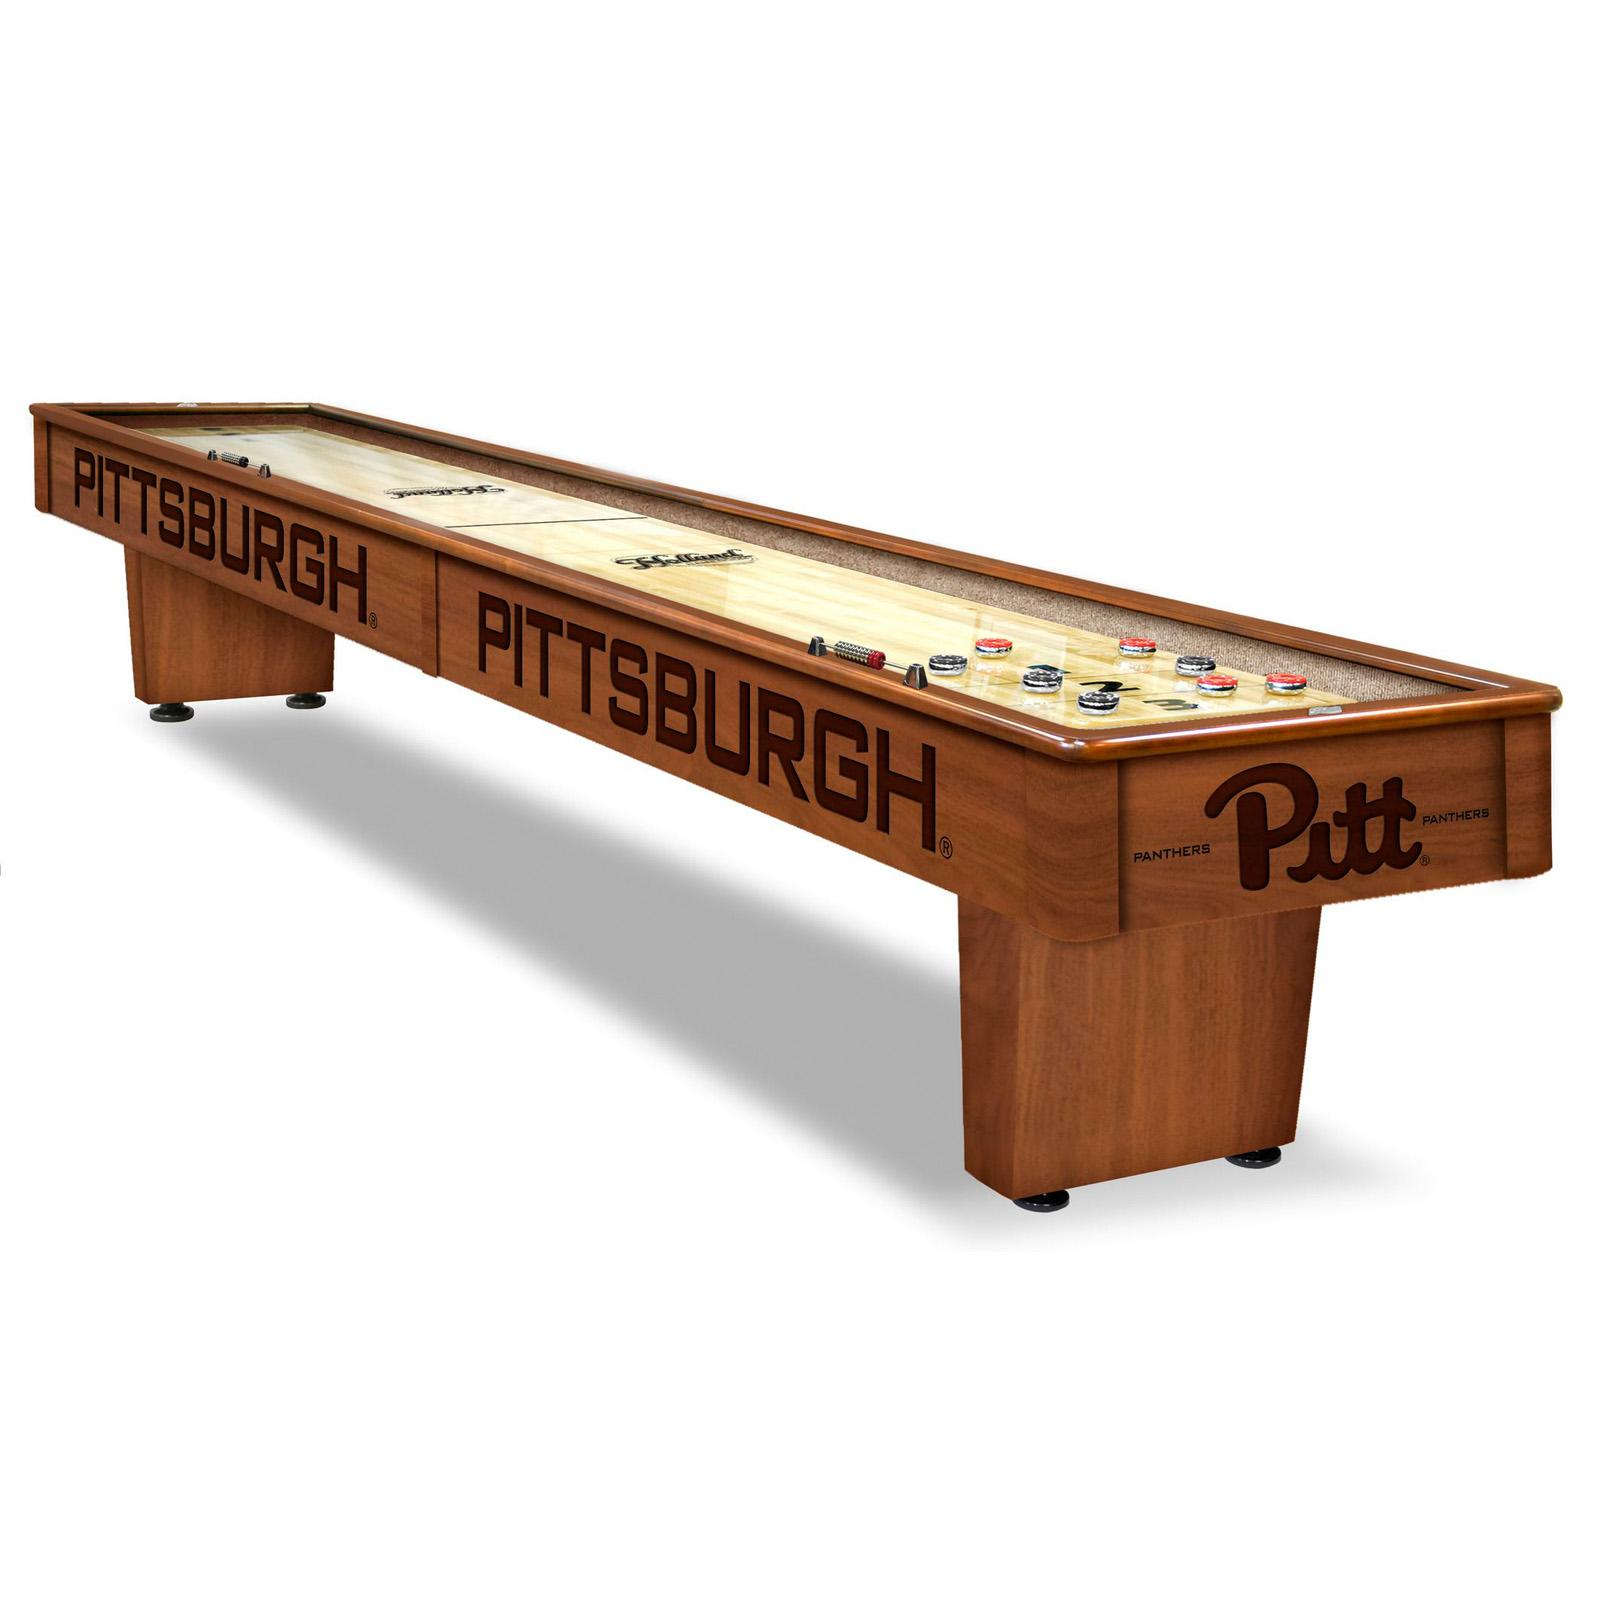 Holland 12 ft. College Shuffleboard Table - SB12CHRDPITTSB